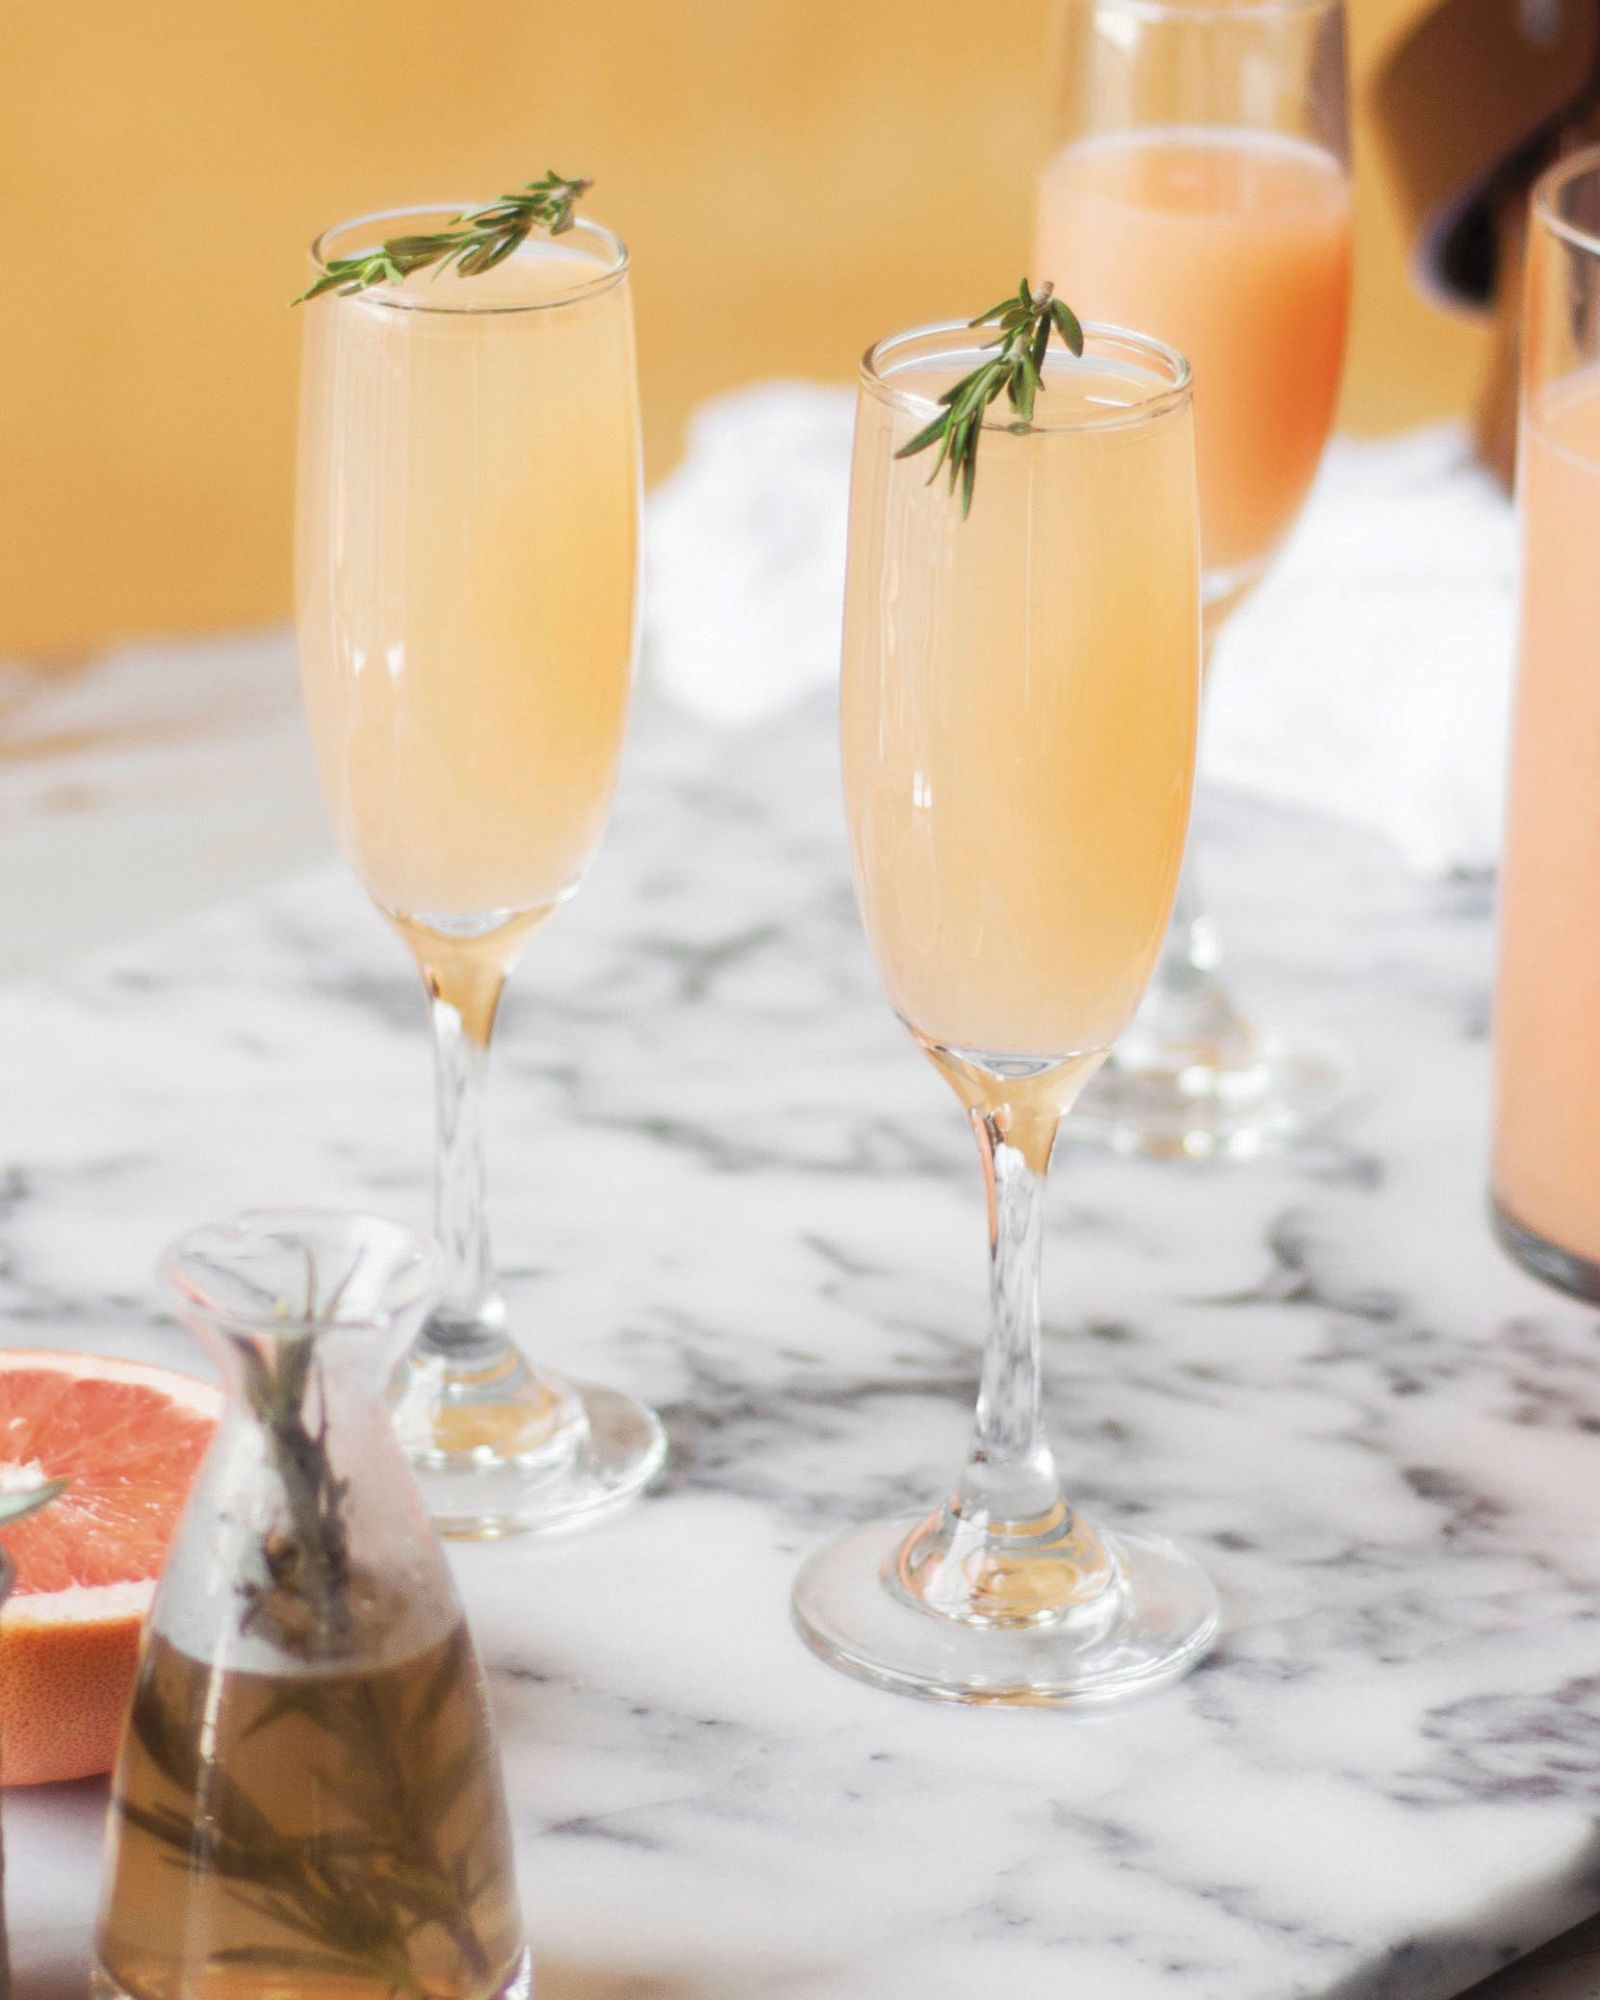 3 Mouthwatering Recipes You Need to Serve at Your Next Brunch Party